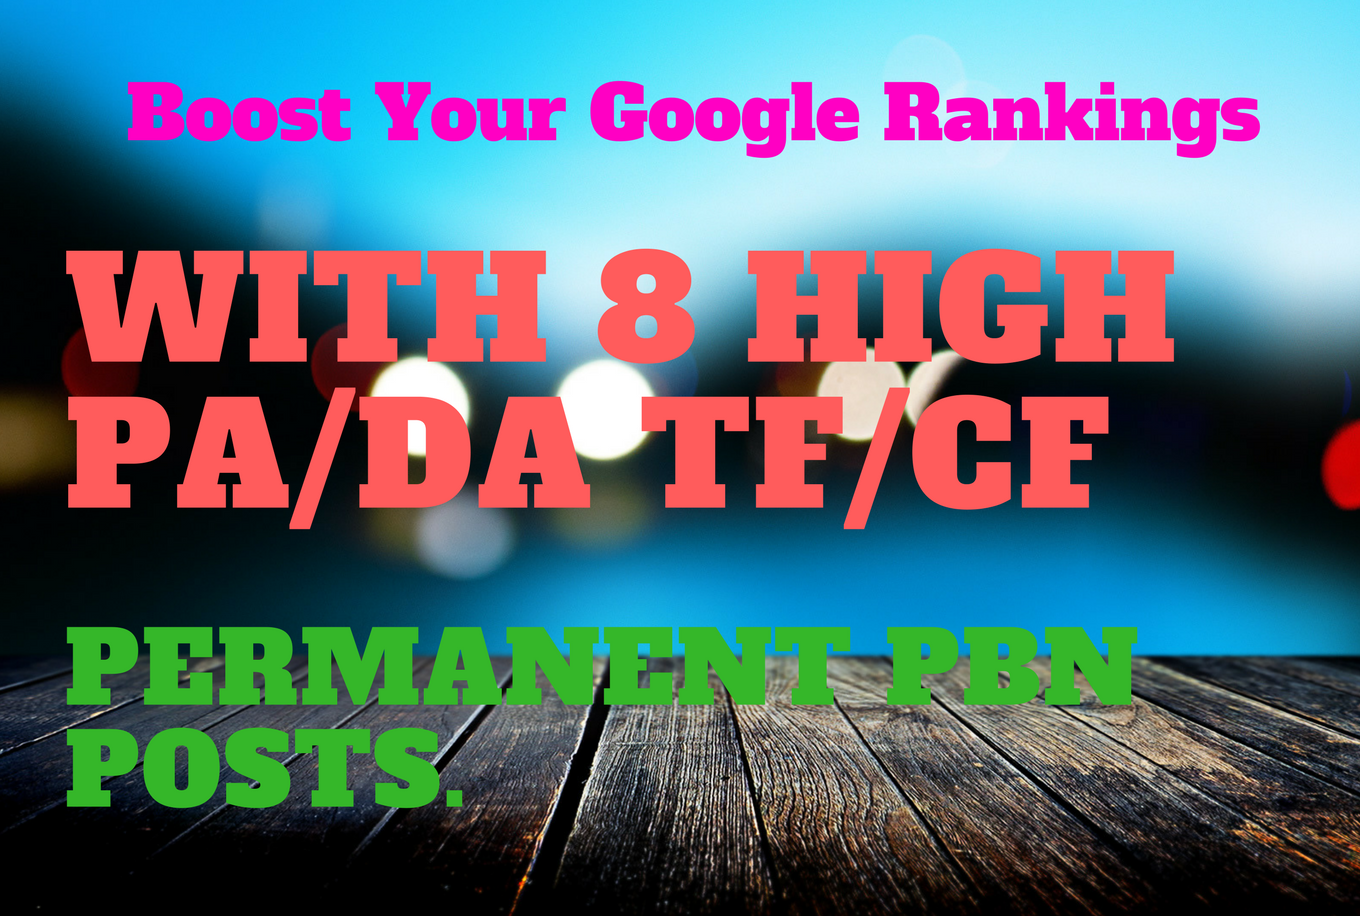 Get 8 High PBN Backlinks To Boost Your SERP